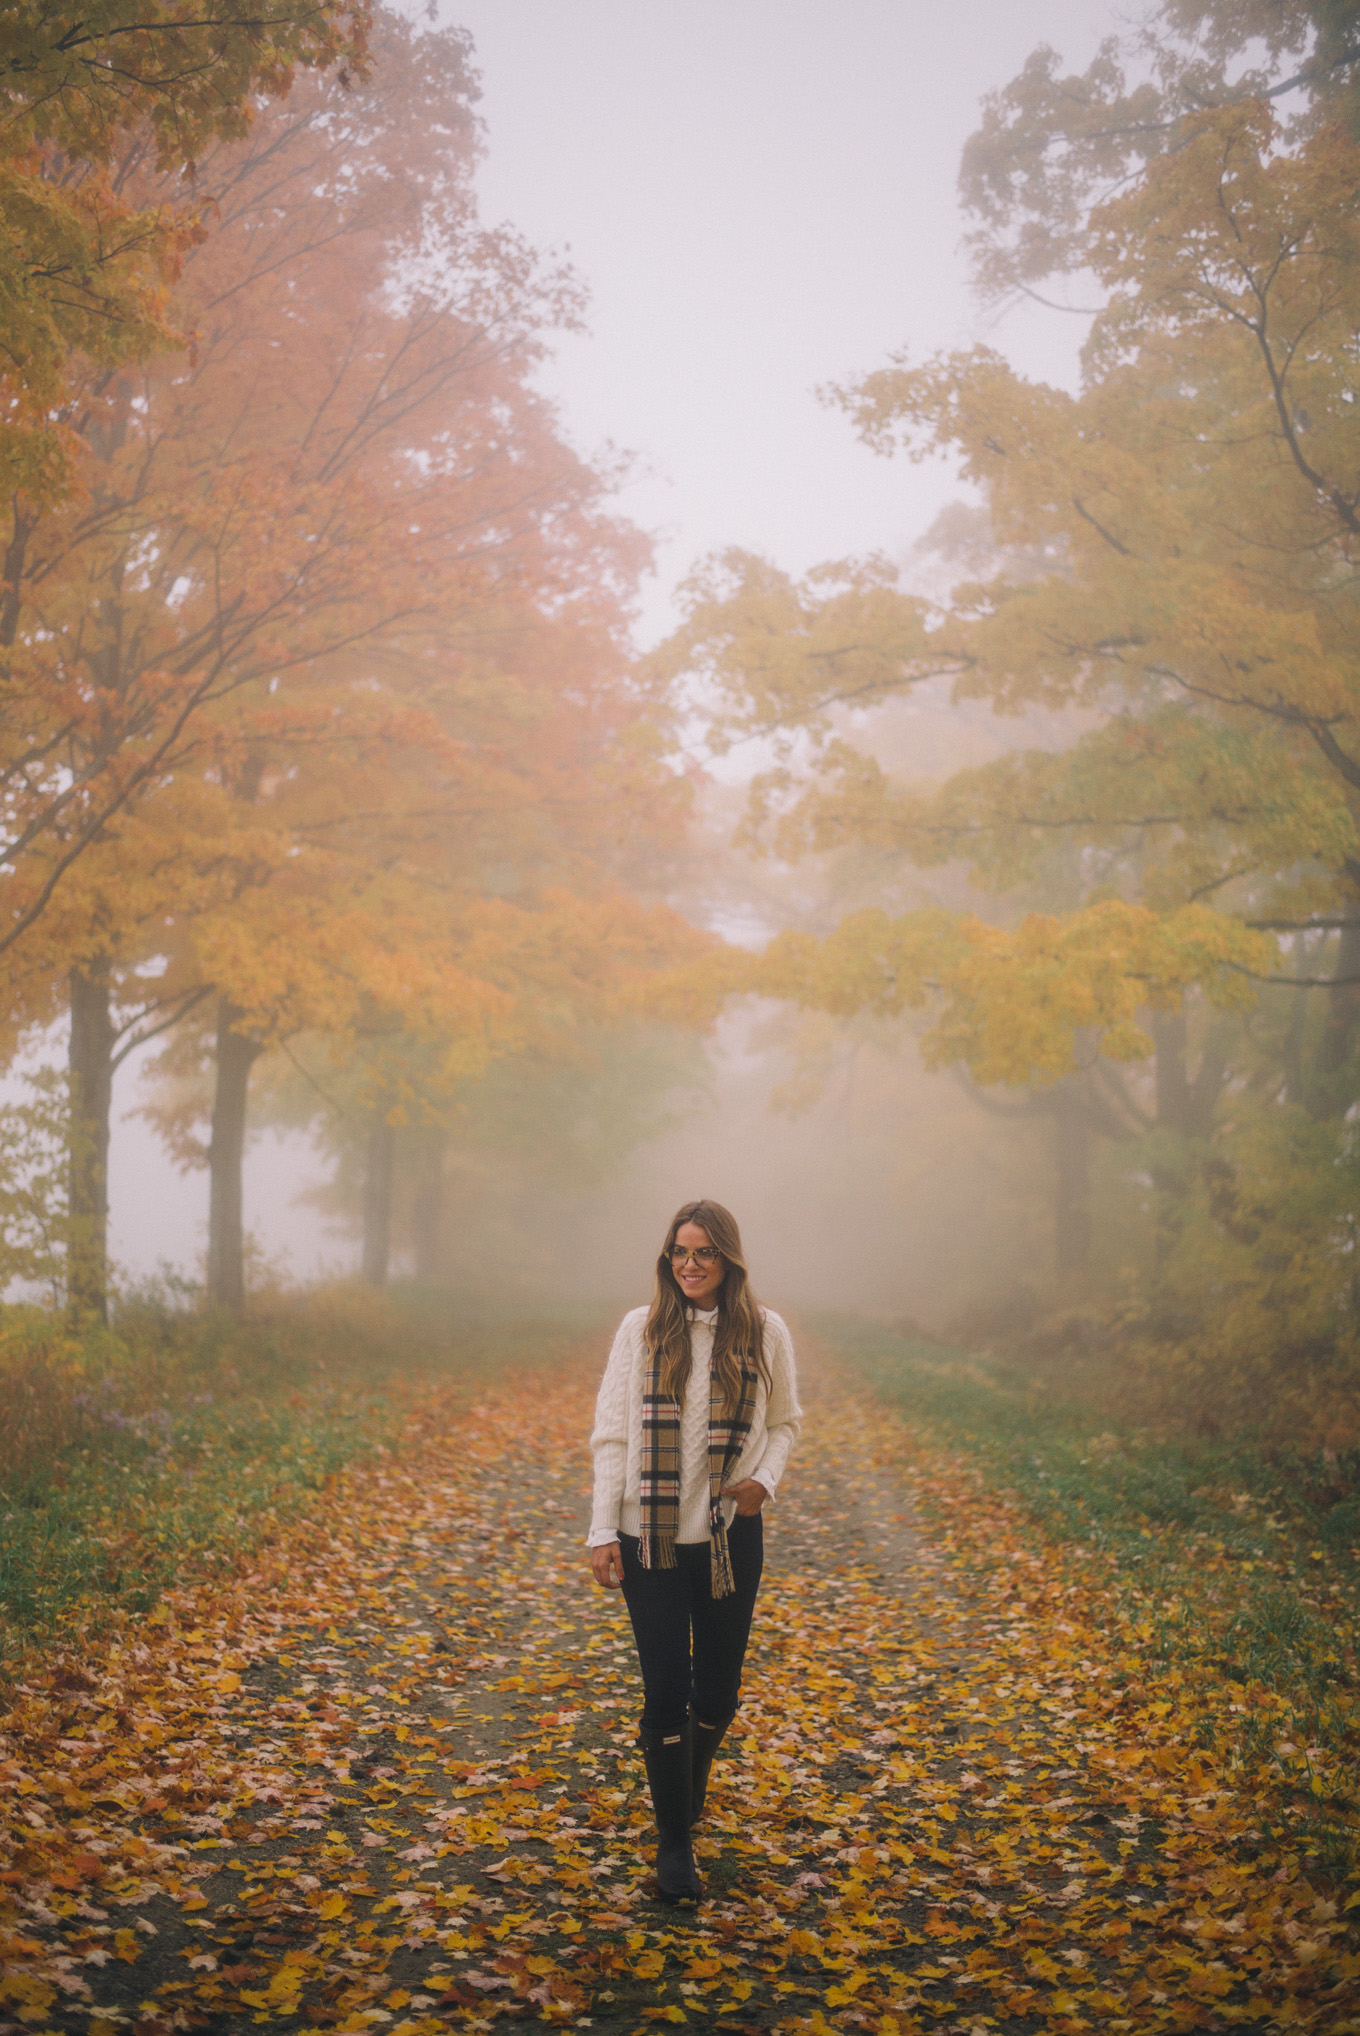 gmg-vermont-foggy-morning-1003771